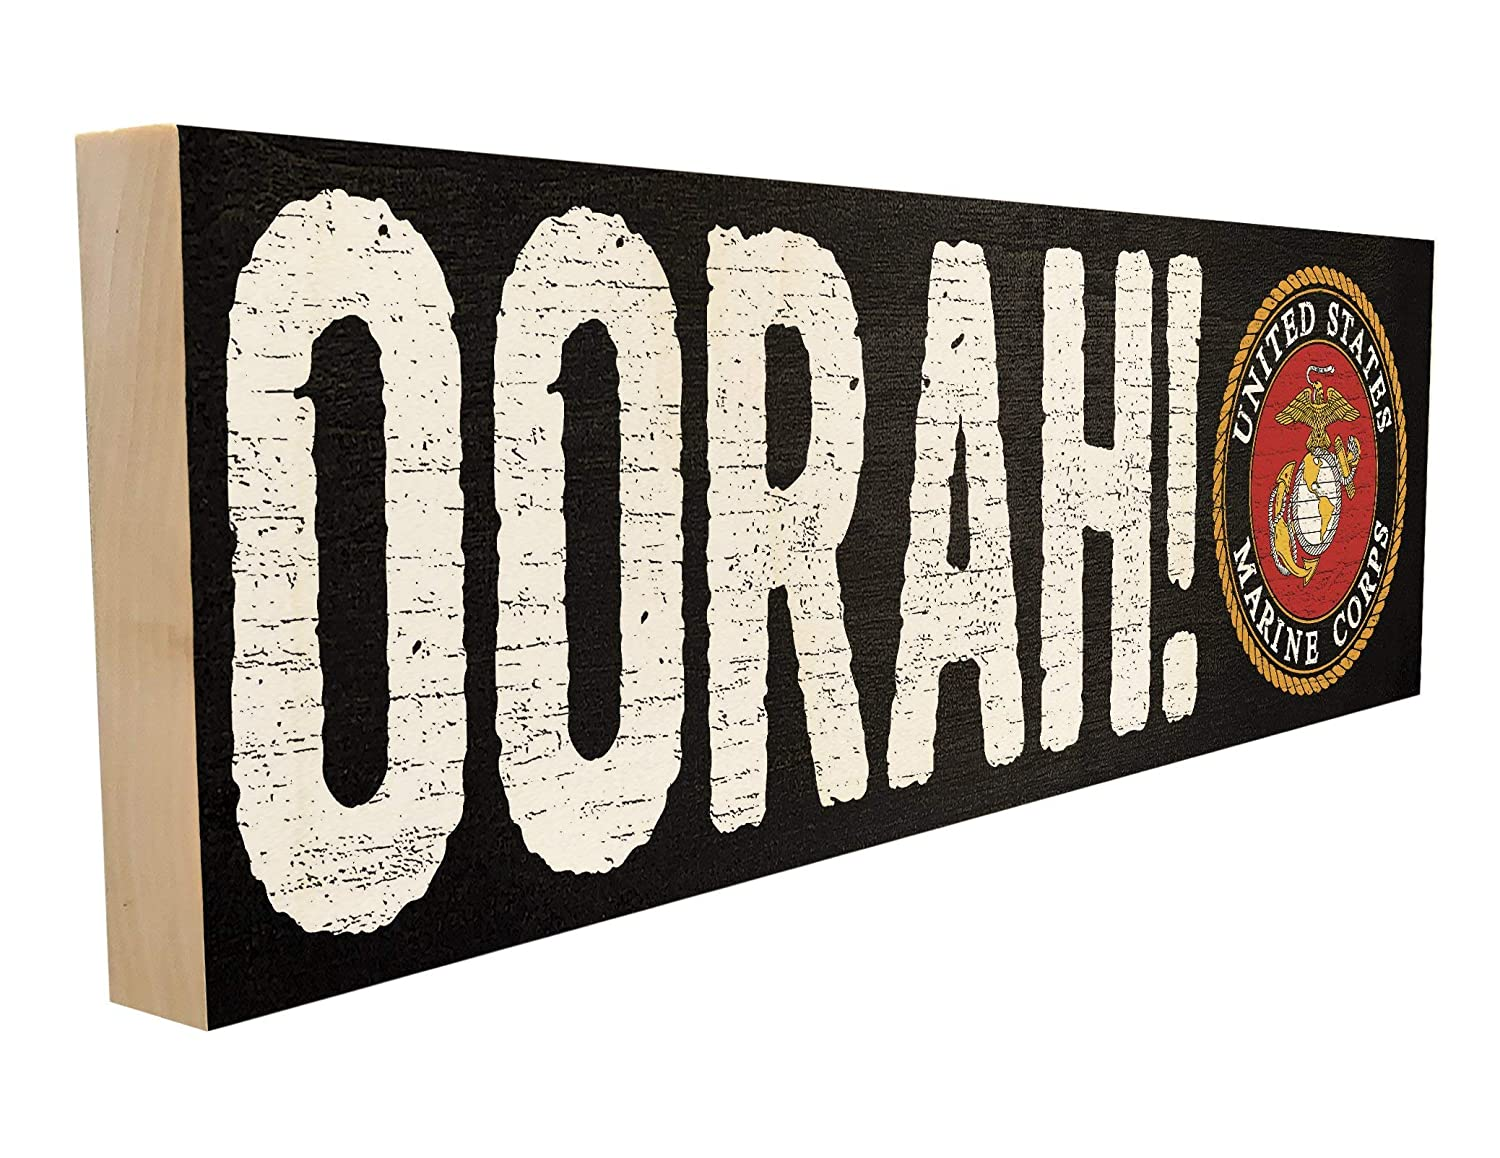 Oorah! Officially Licensed by The United States Marine Corps. Slogan, Saying or Quote for Friends and Family. 4 inches x 12 inches. Custom Handmade Solid Wood Block Sign. Hand-Crafted in Tennessee.